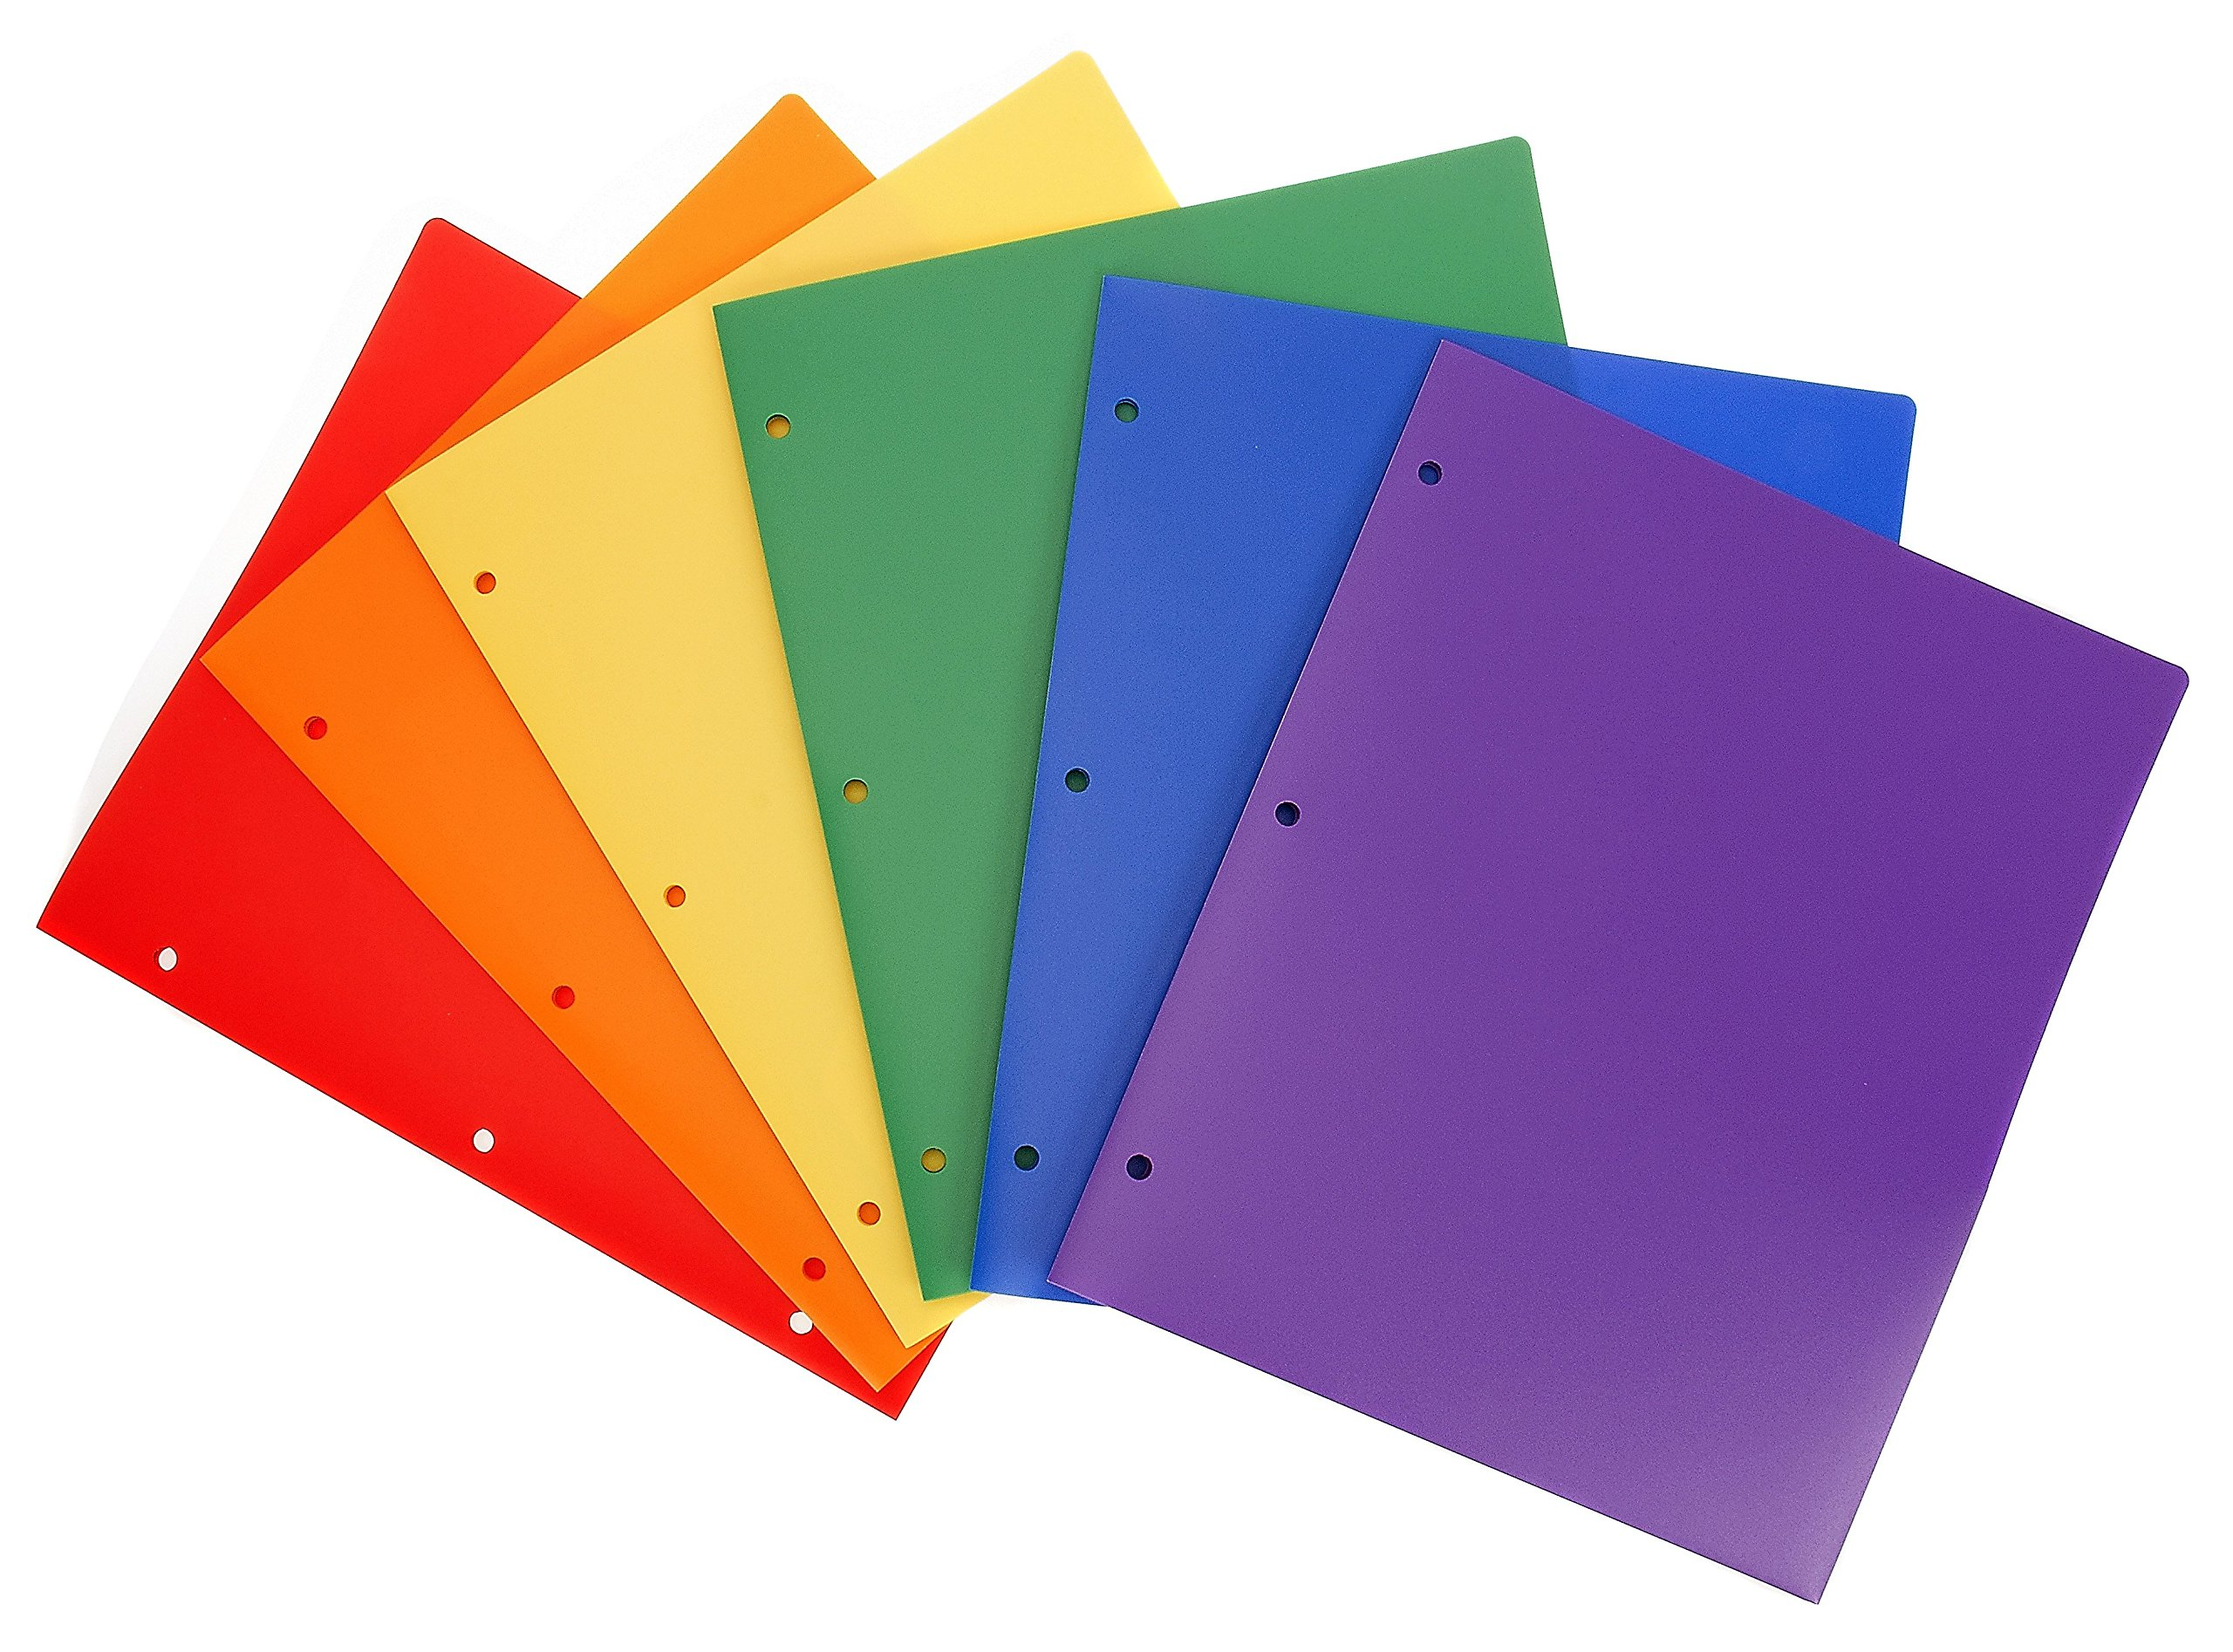 STEMSFX Heavy Duty Plastic 2 Pocket Folder Hole Punched (Pack of 6 Folders Assorted Colors) For Letter Size Papers, Includes Business Card Slot